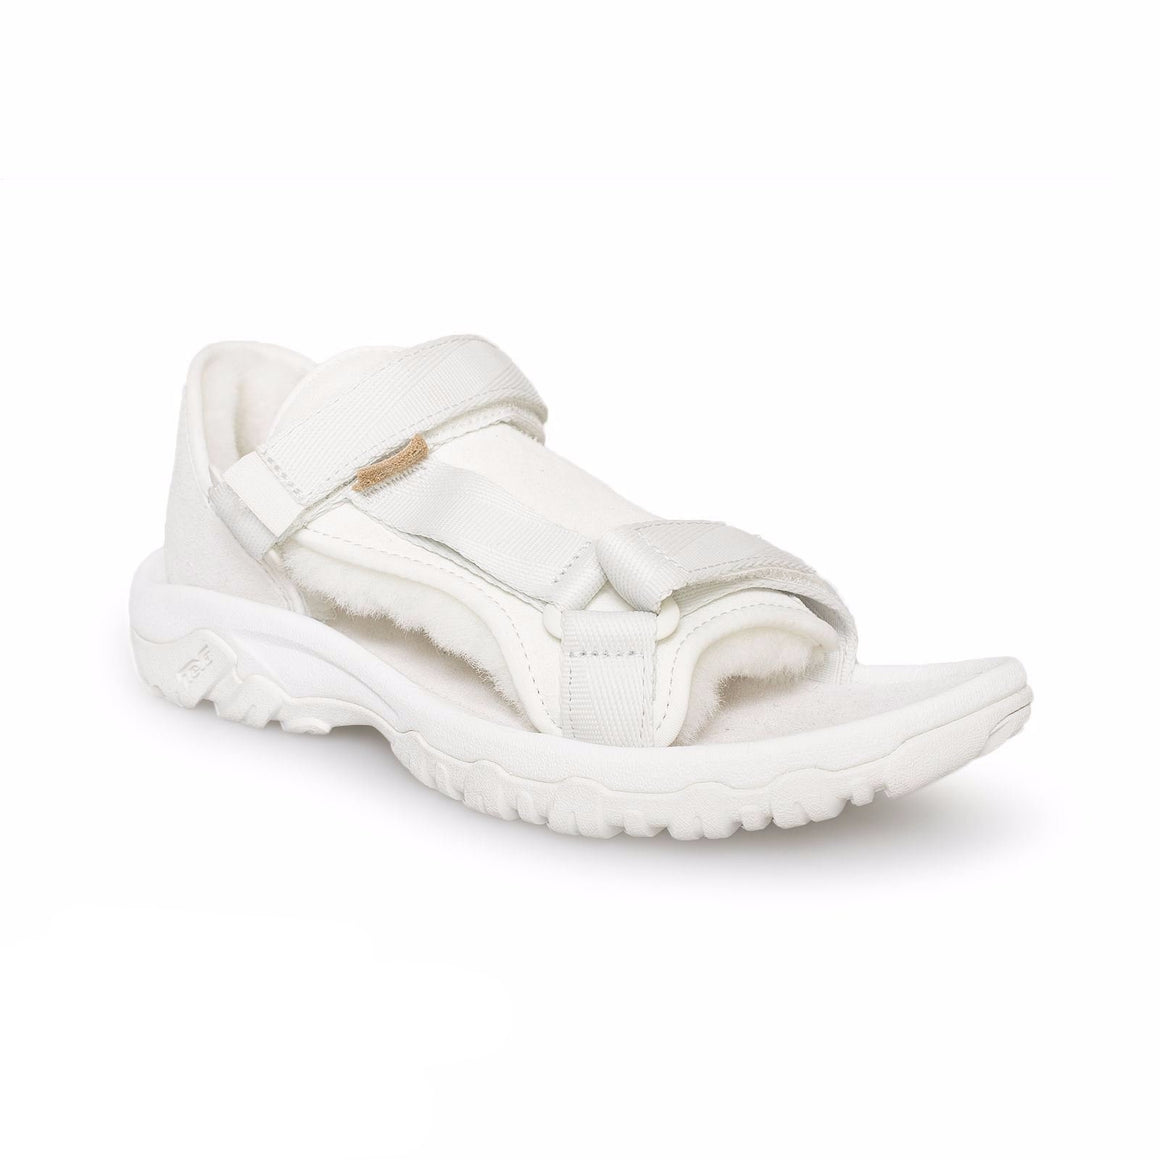 UGG/TEVA Collaboration White Sandals